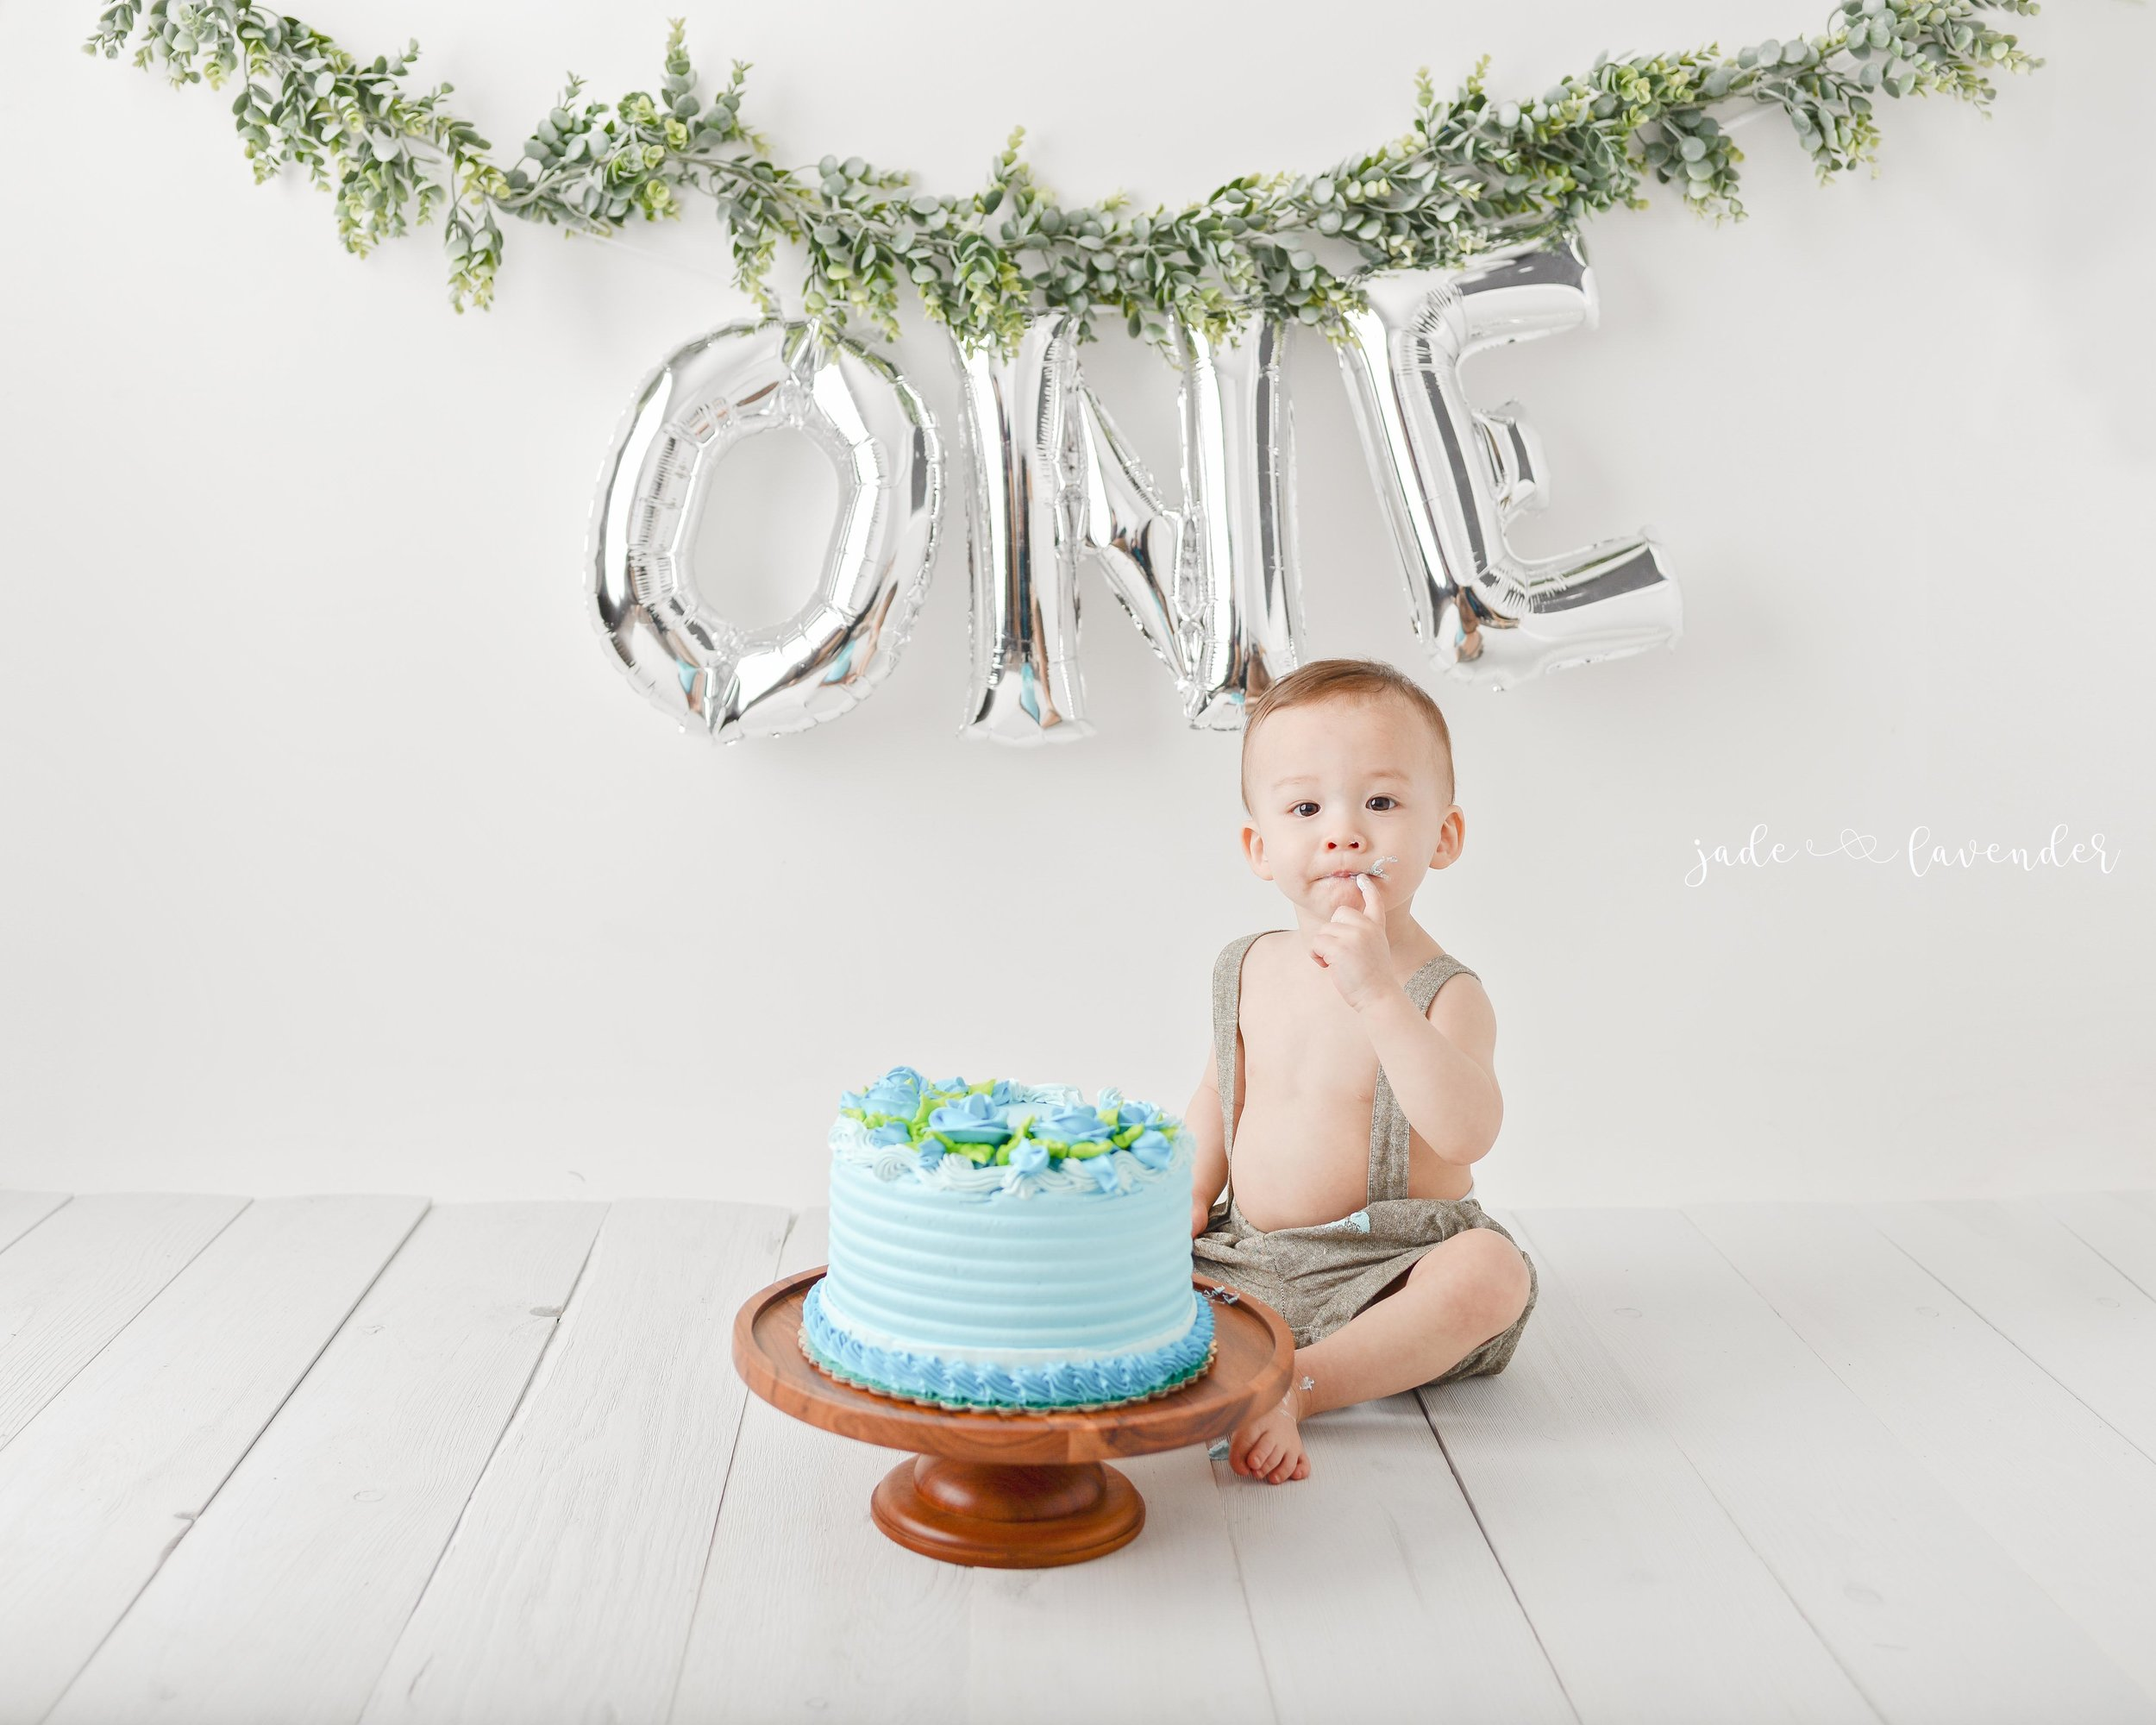 first-birthday-photos-cake-smash-milestone-images-birthday-photography-spokane-washington (5 of 5).jpg